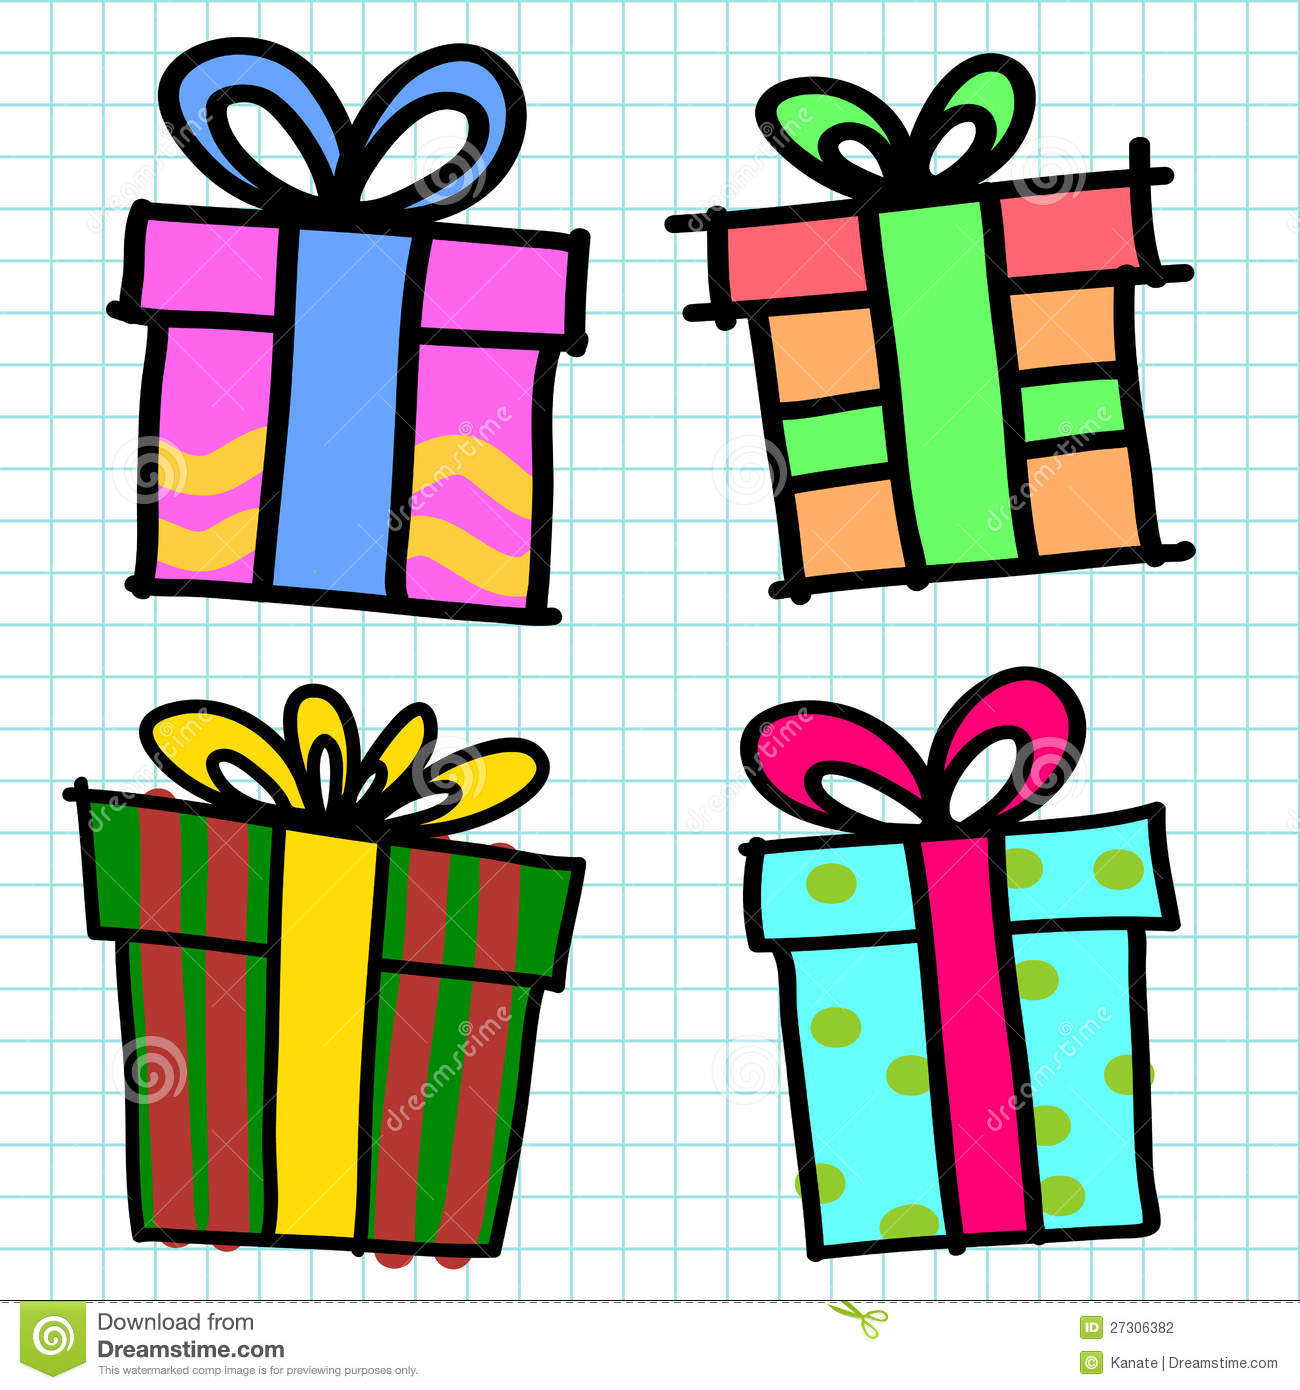 Gifts box cartoon stock photography image 27306382 royalty free stock photo download gifts box cartoon negle Gallery